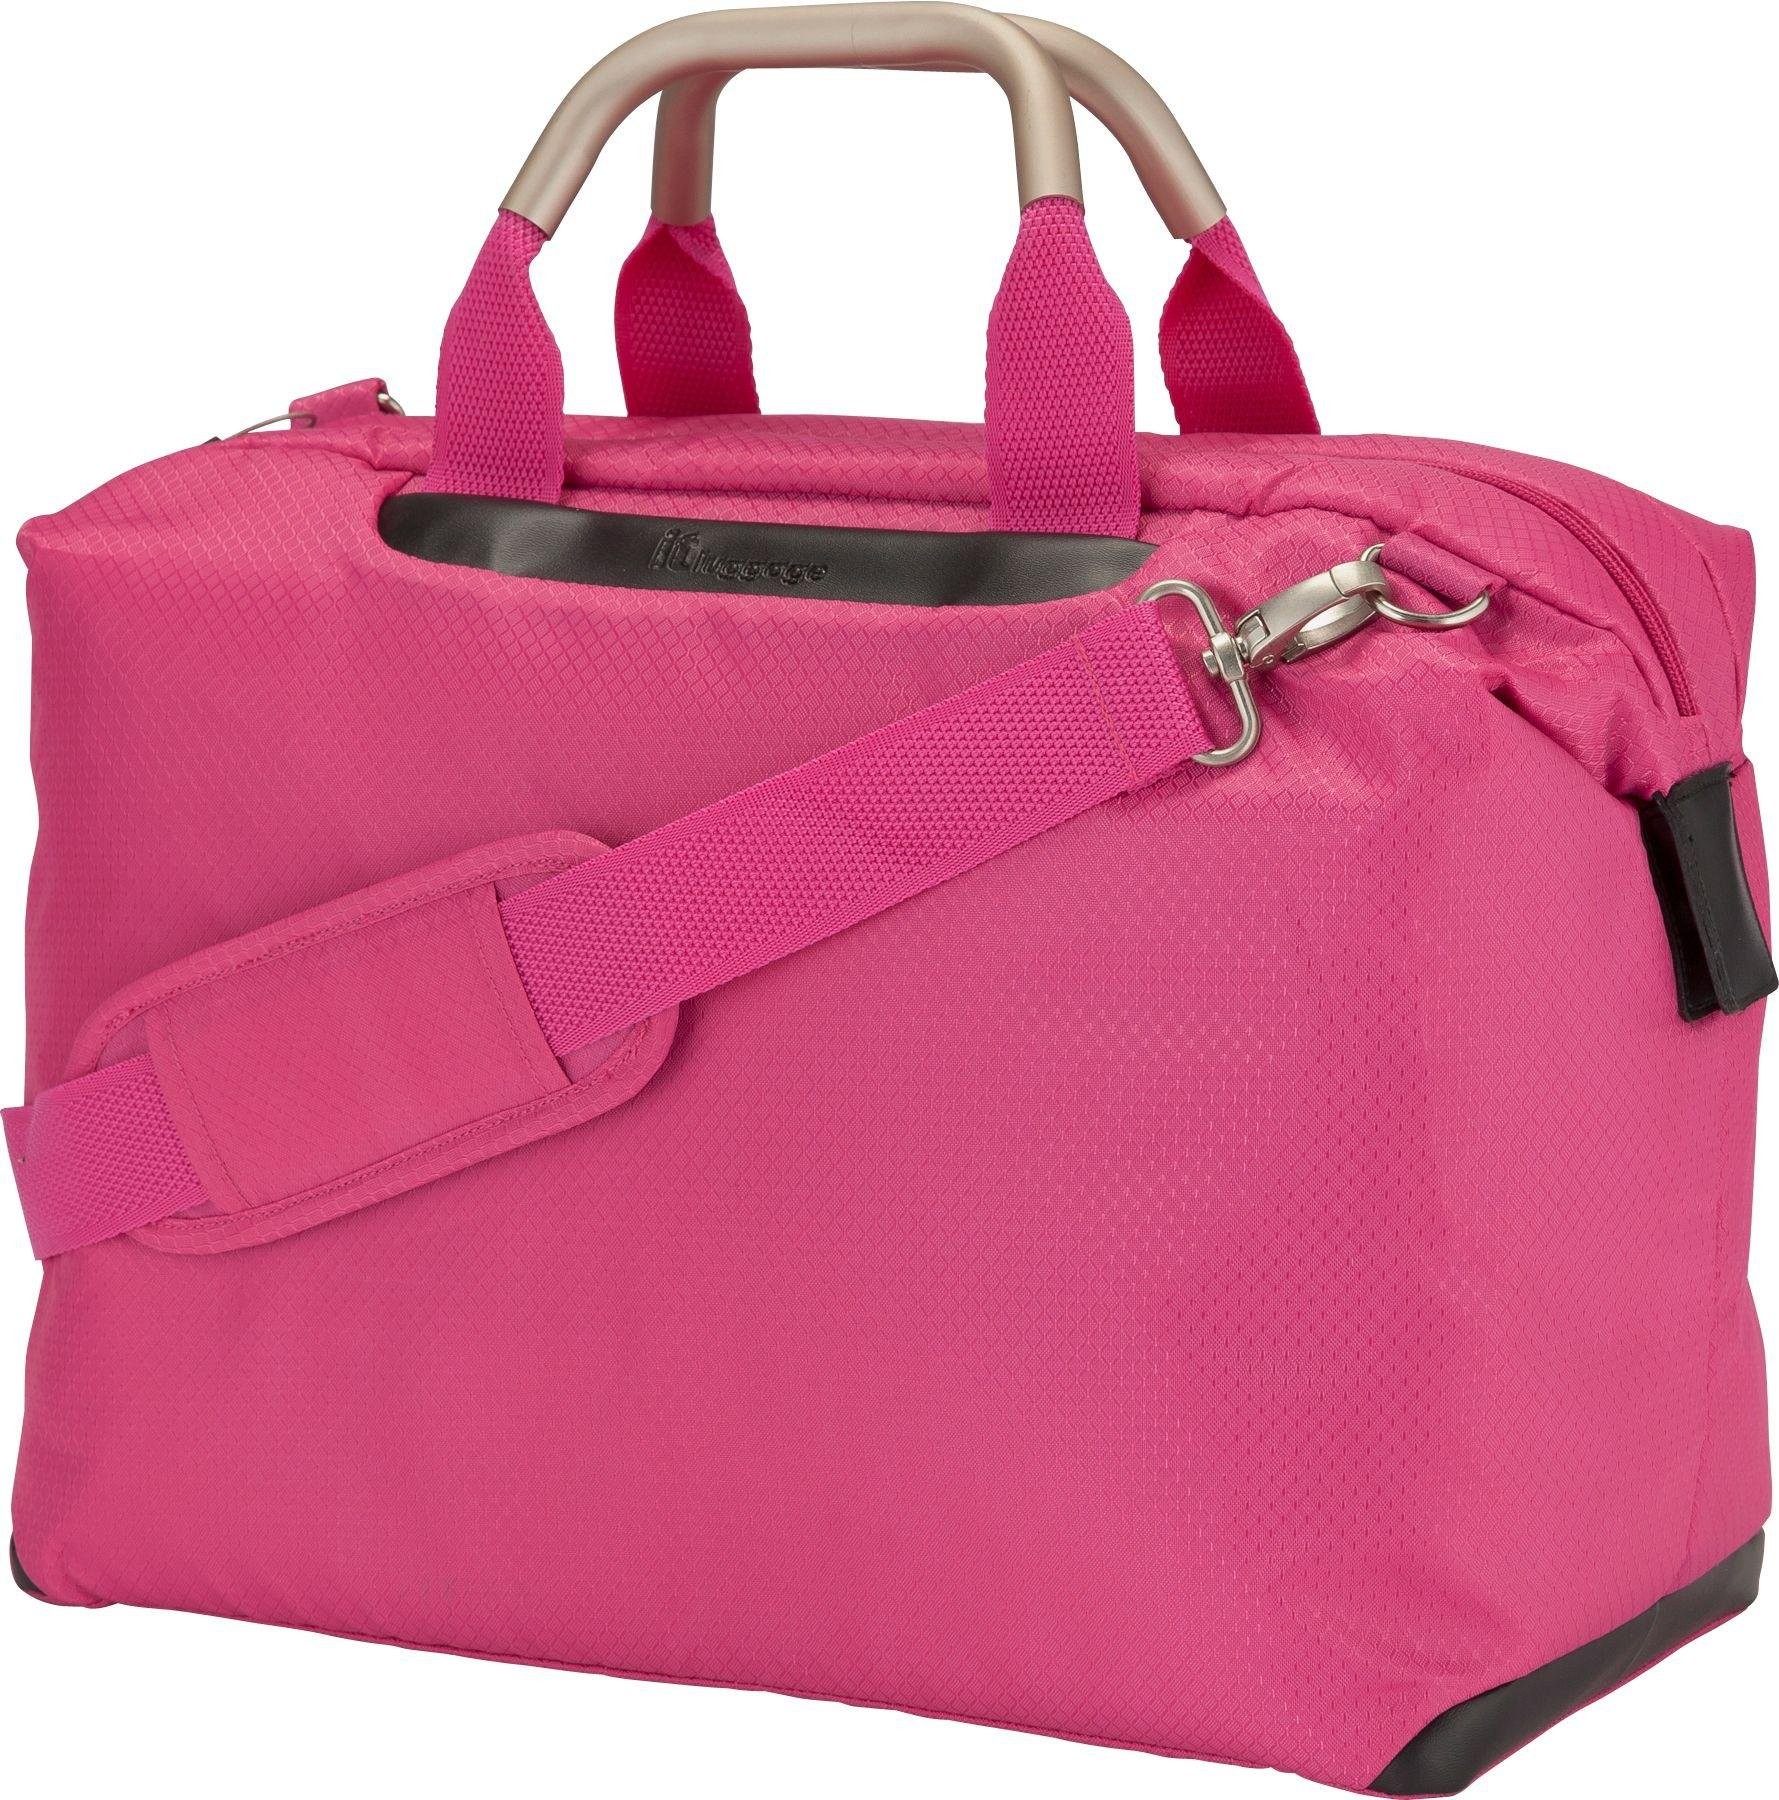 Buy IT World's Lightest Cabin Bag - Pink at Argos.co.uk - Your ...